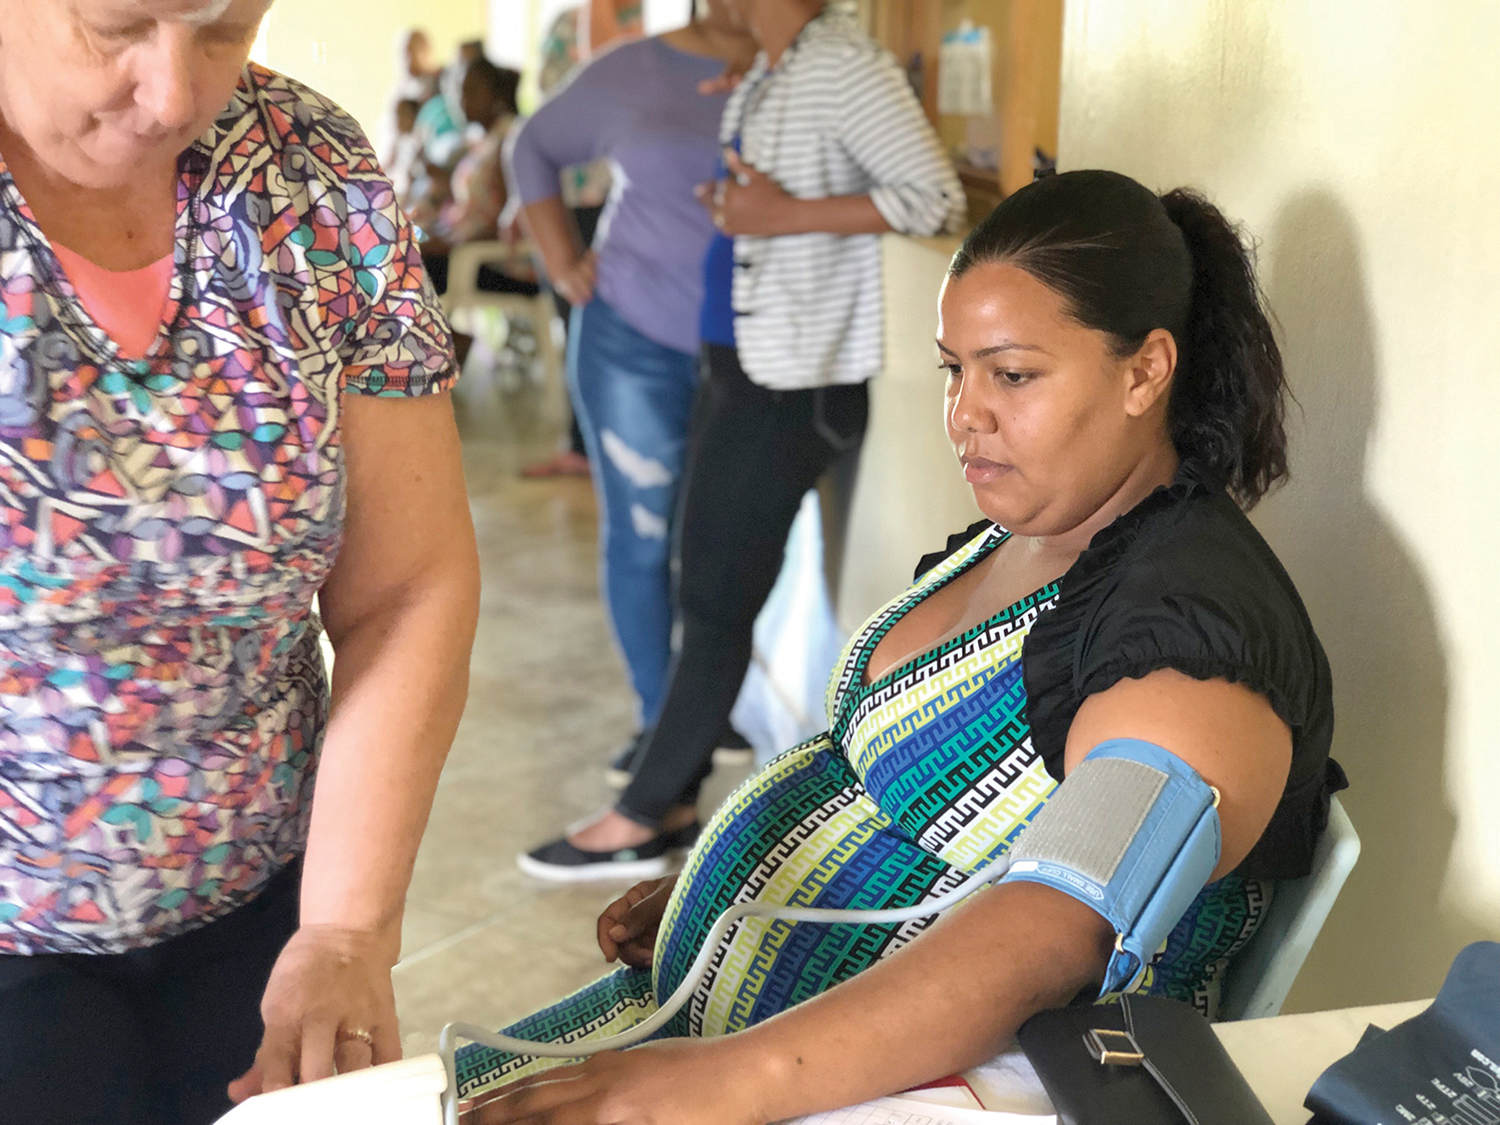 Each of the pregnant women received health screenings, including blood pressure, weight, iron level checks, and ultrasounds.